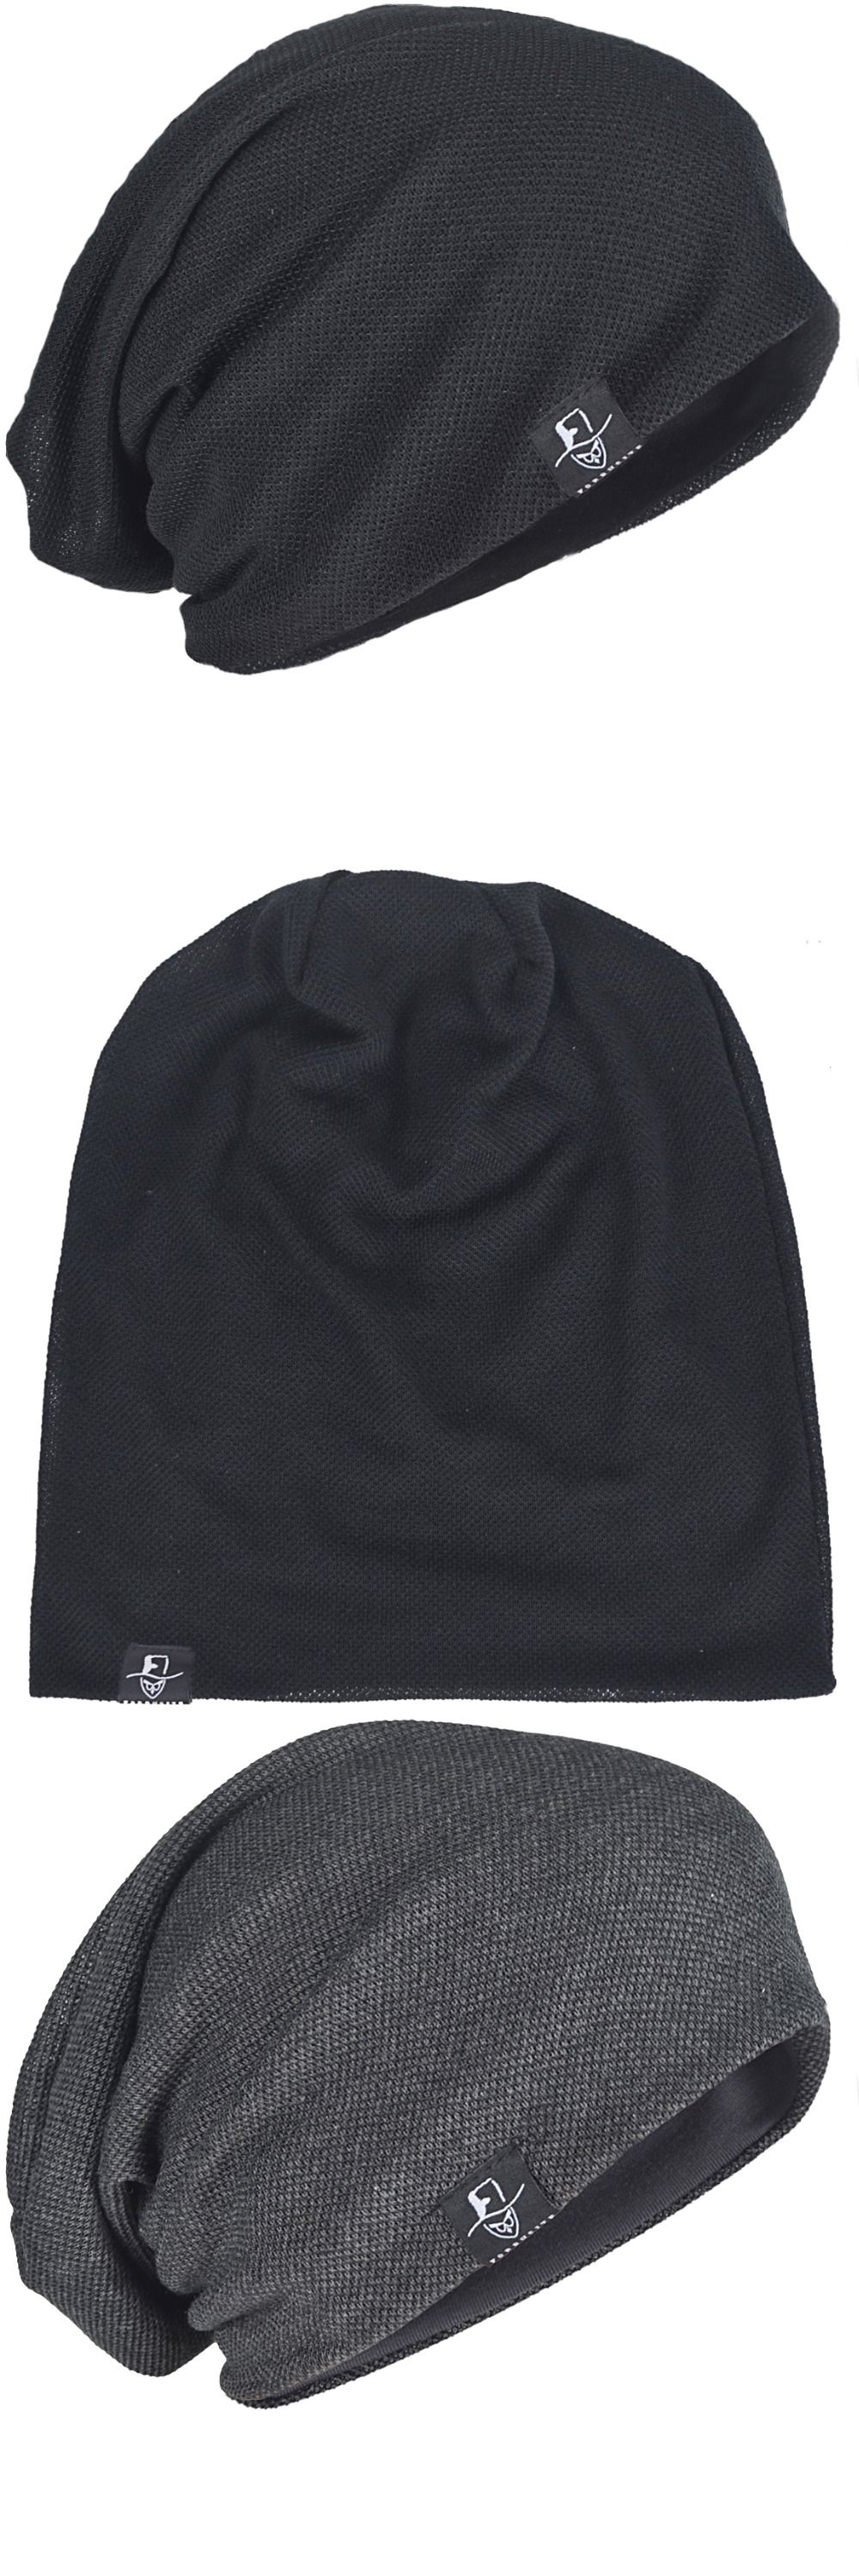 b9485a62a87 Men Summer Slouch Thin Beanie Large Hat Skullcap Cool Daily Cap FORBUSITE